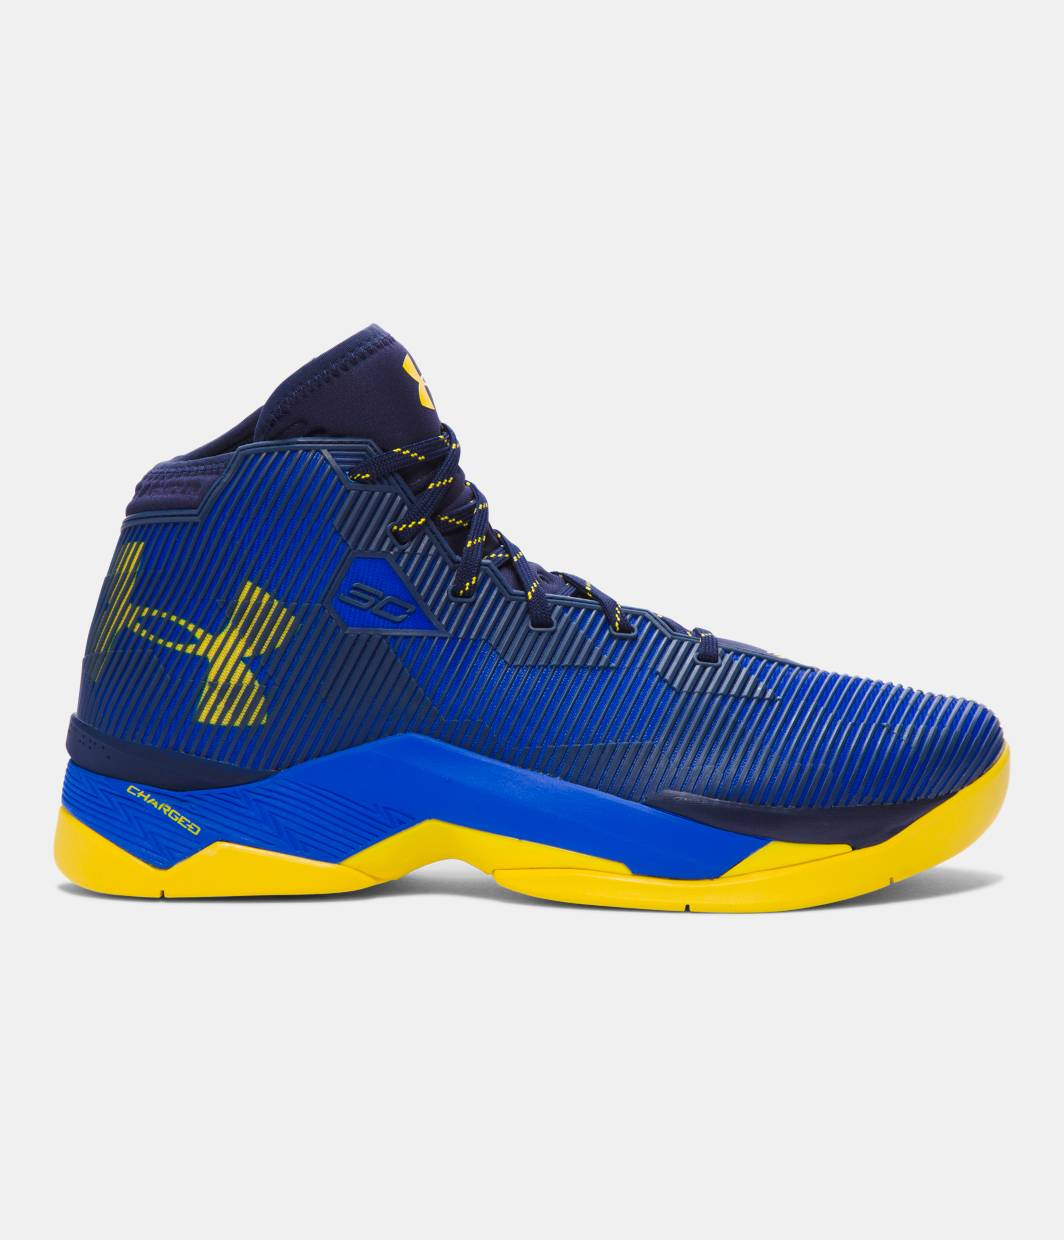 Boys Size   Under Armour Shoes On Sale